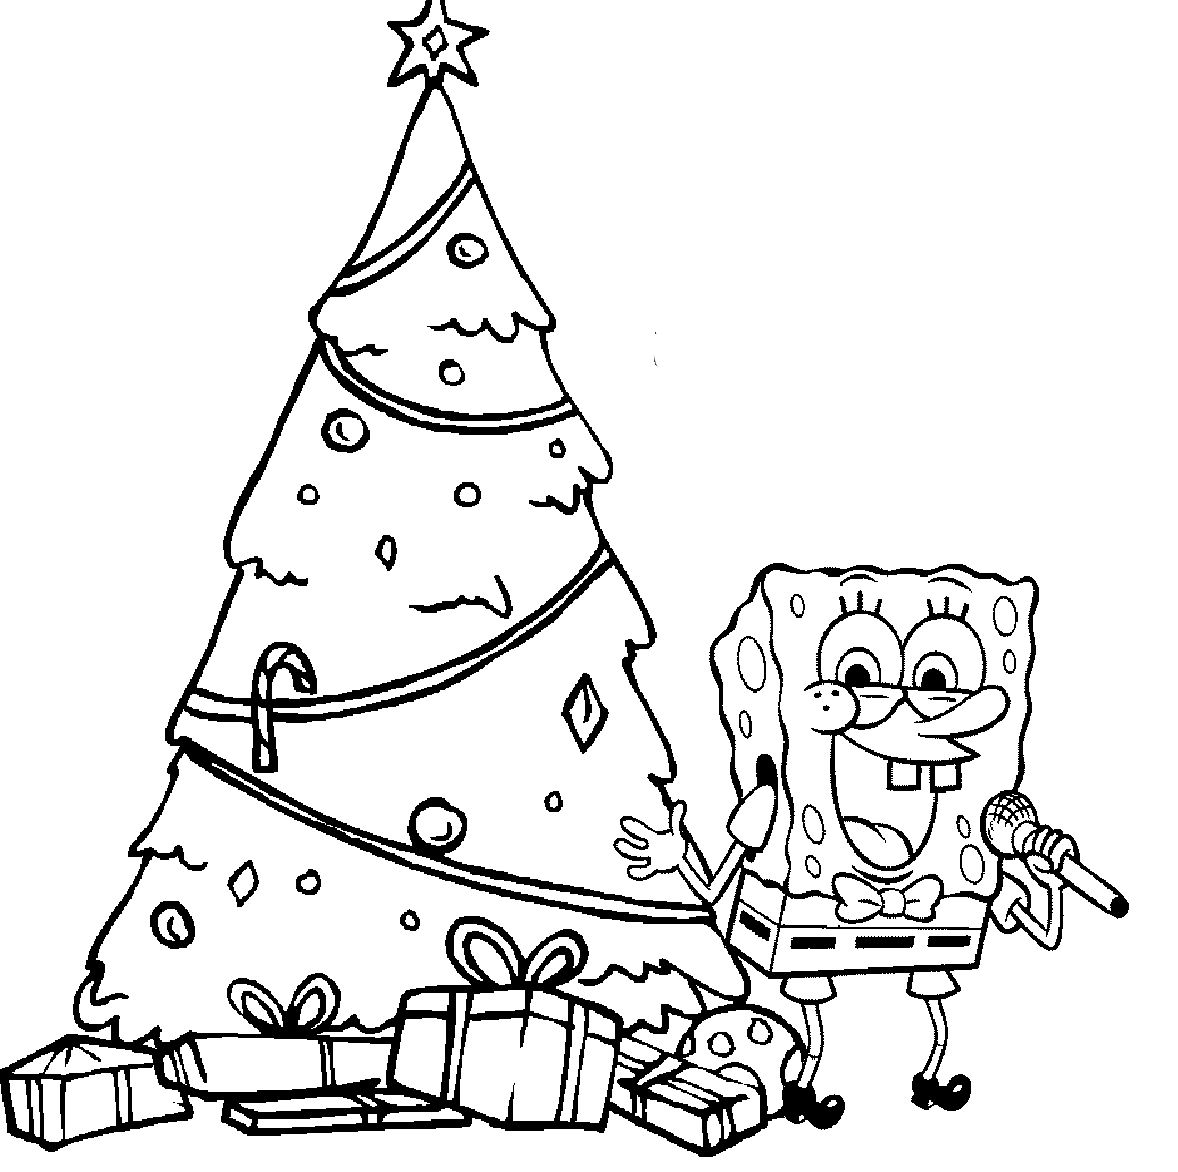 spongebob coloring pages christmas - spongebob happy christmas coloring page coloring pages